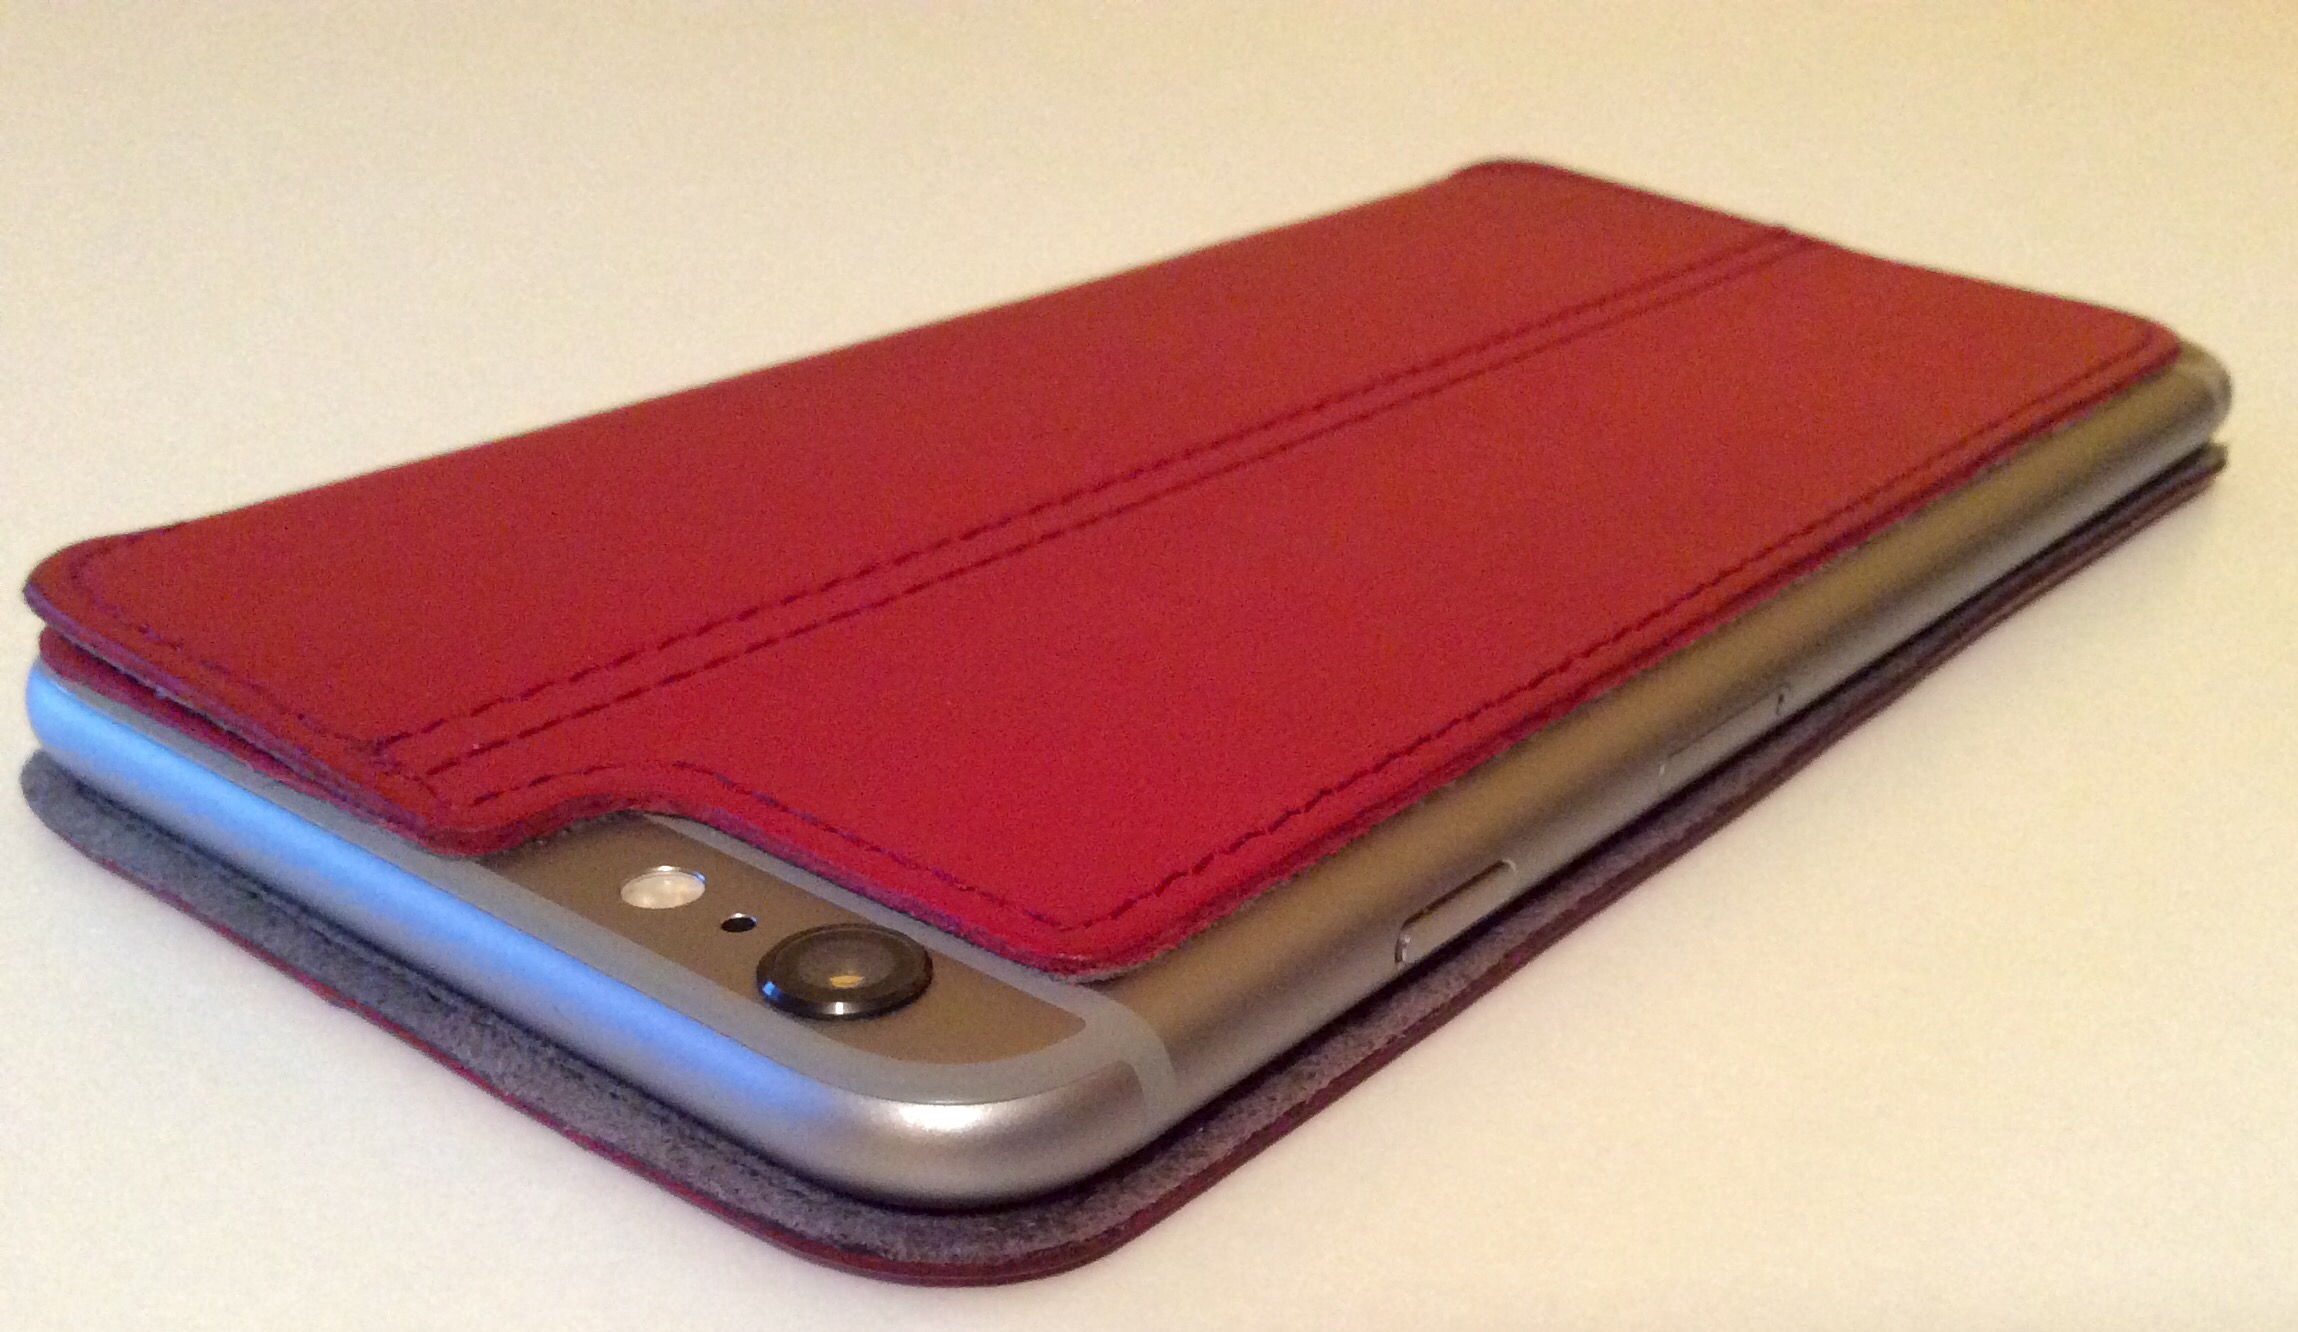 Twelve South SurfacePad for iPhone 6 Plus image 00008